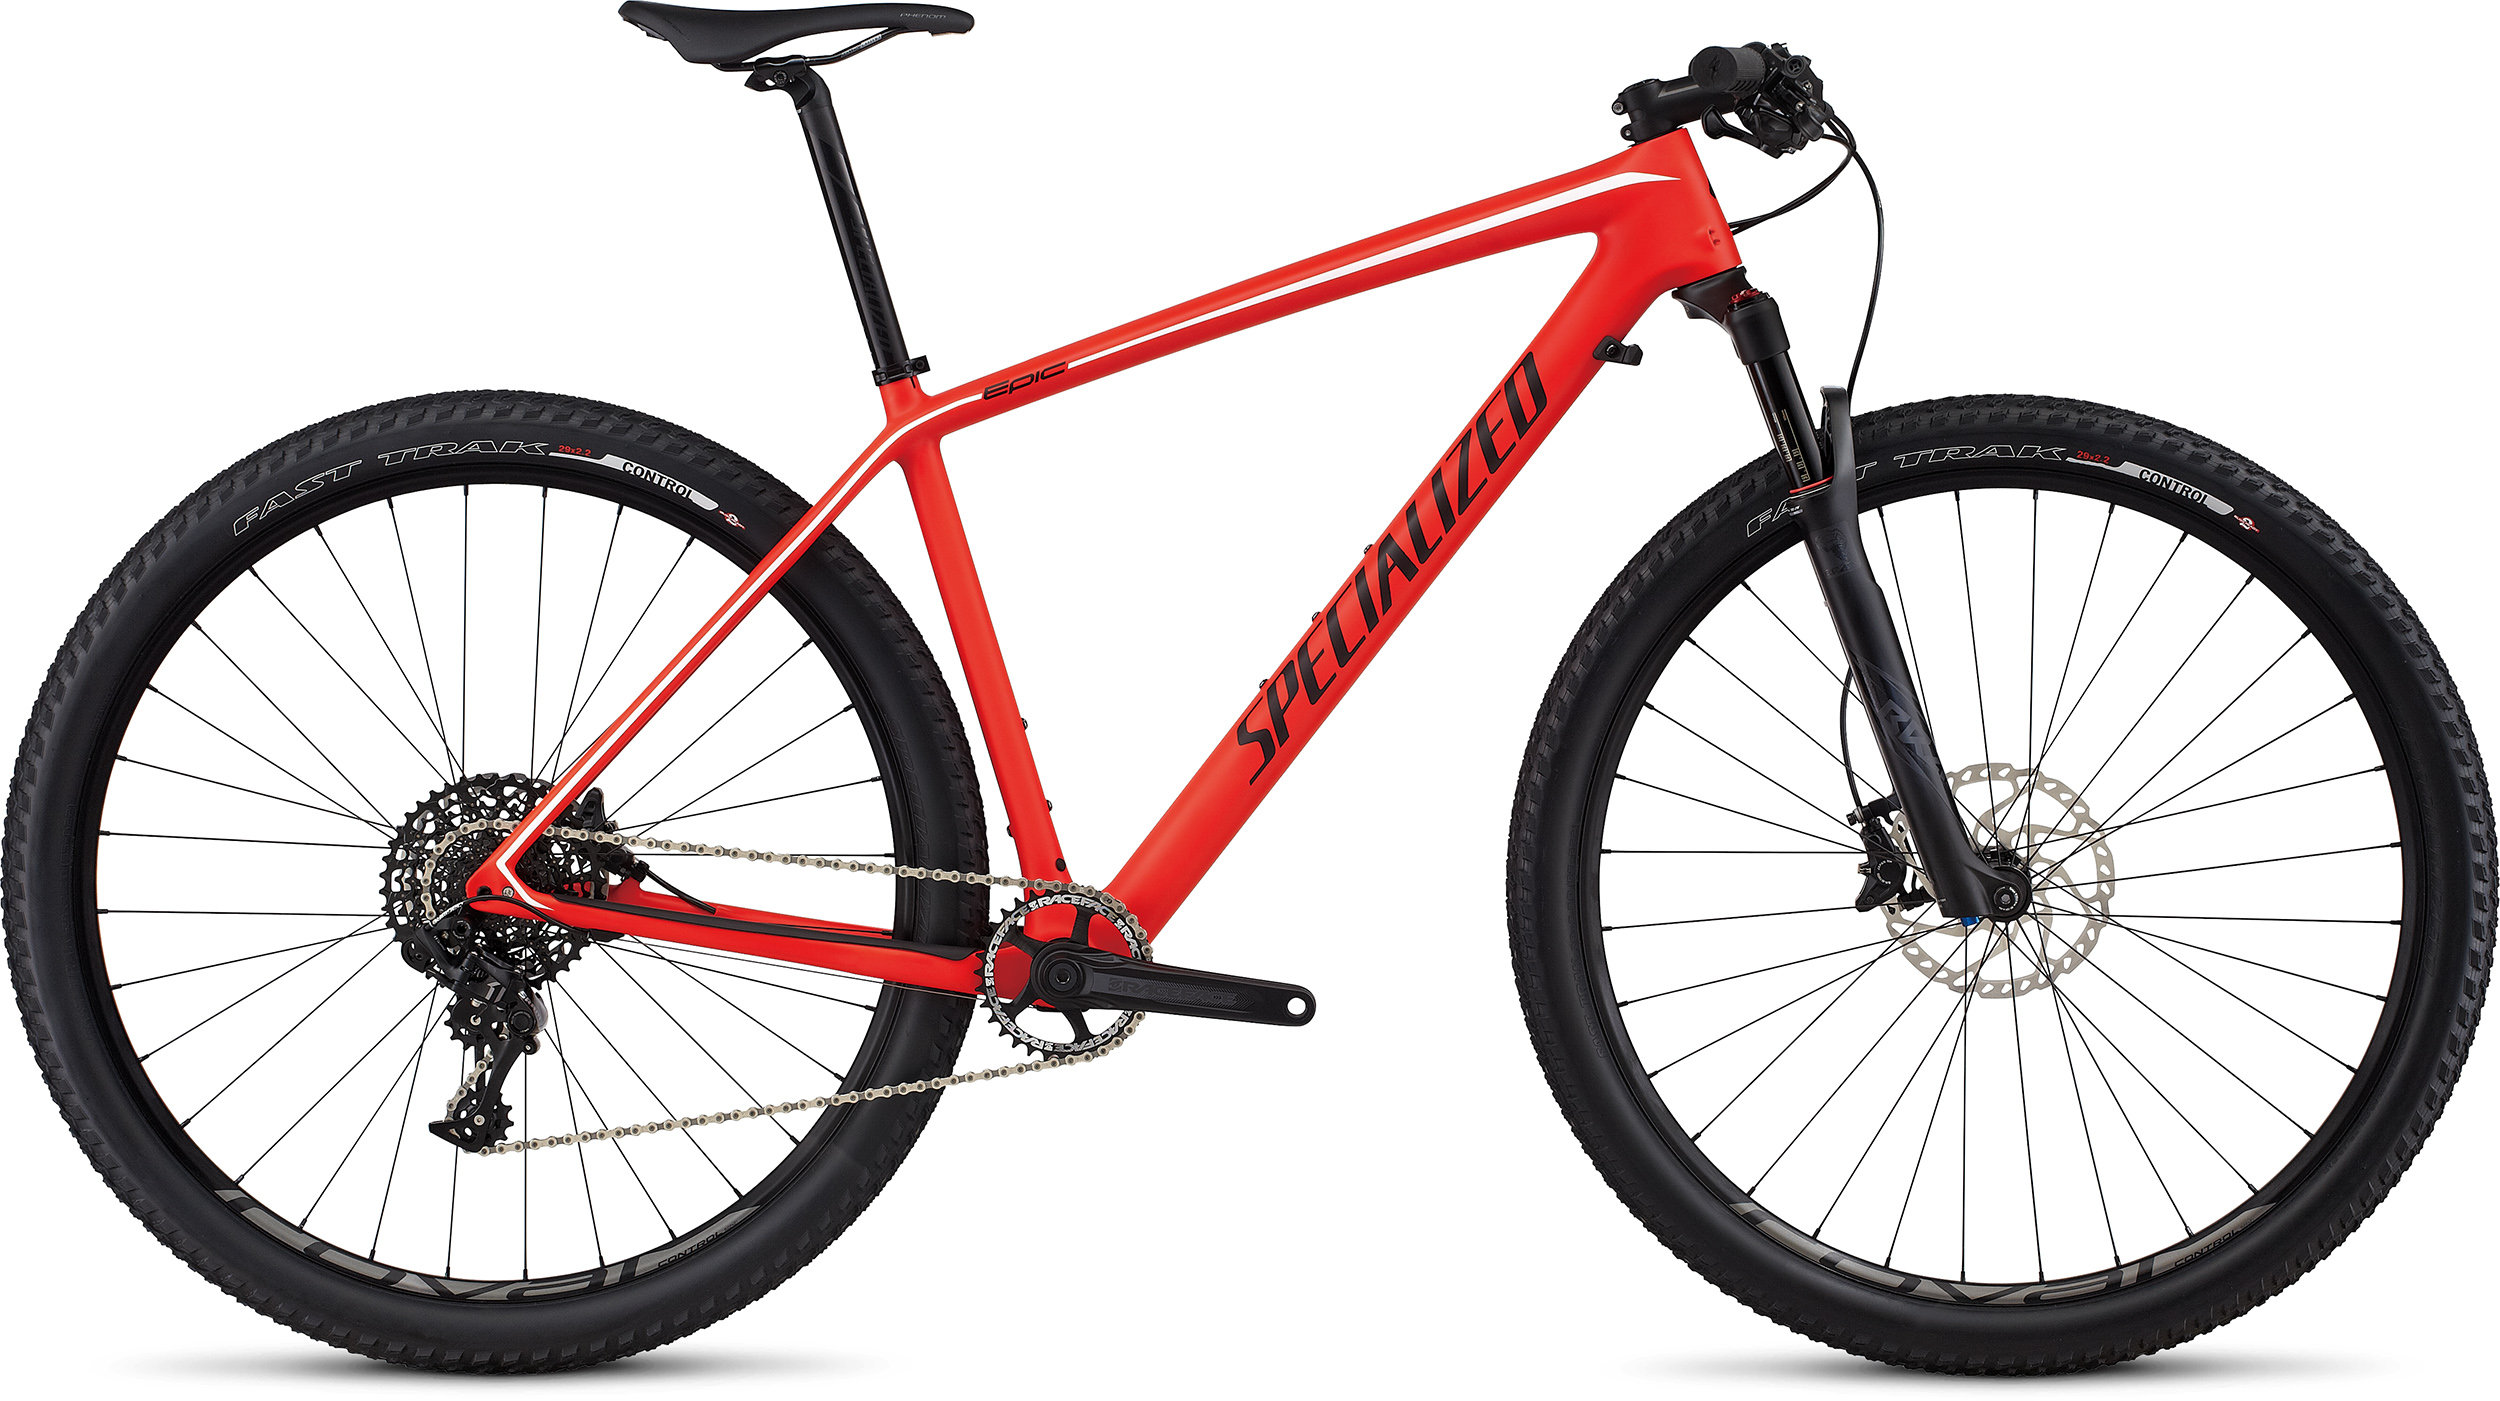 SPECIALIZED EPIC HT EXPERT CARBON WC 29 RKTRED/BLK/WHT S - Bikedreams & Dustbikes